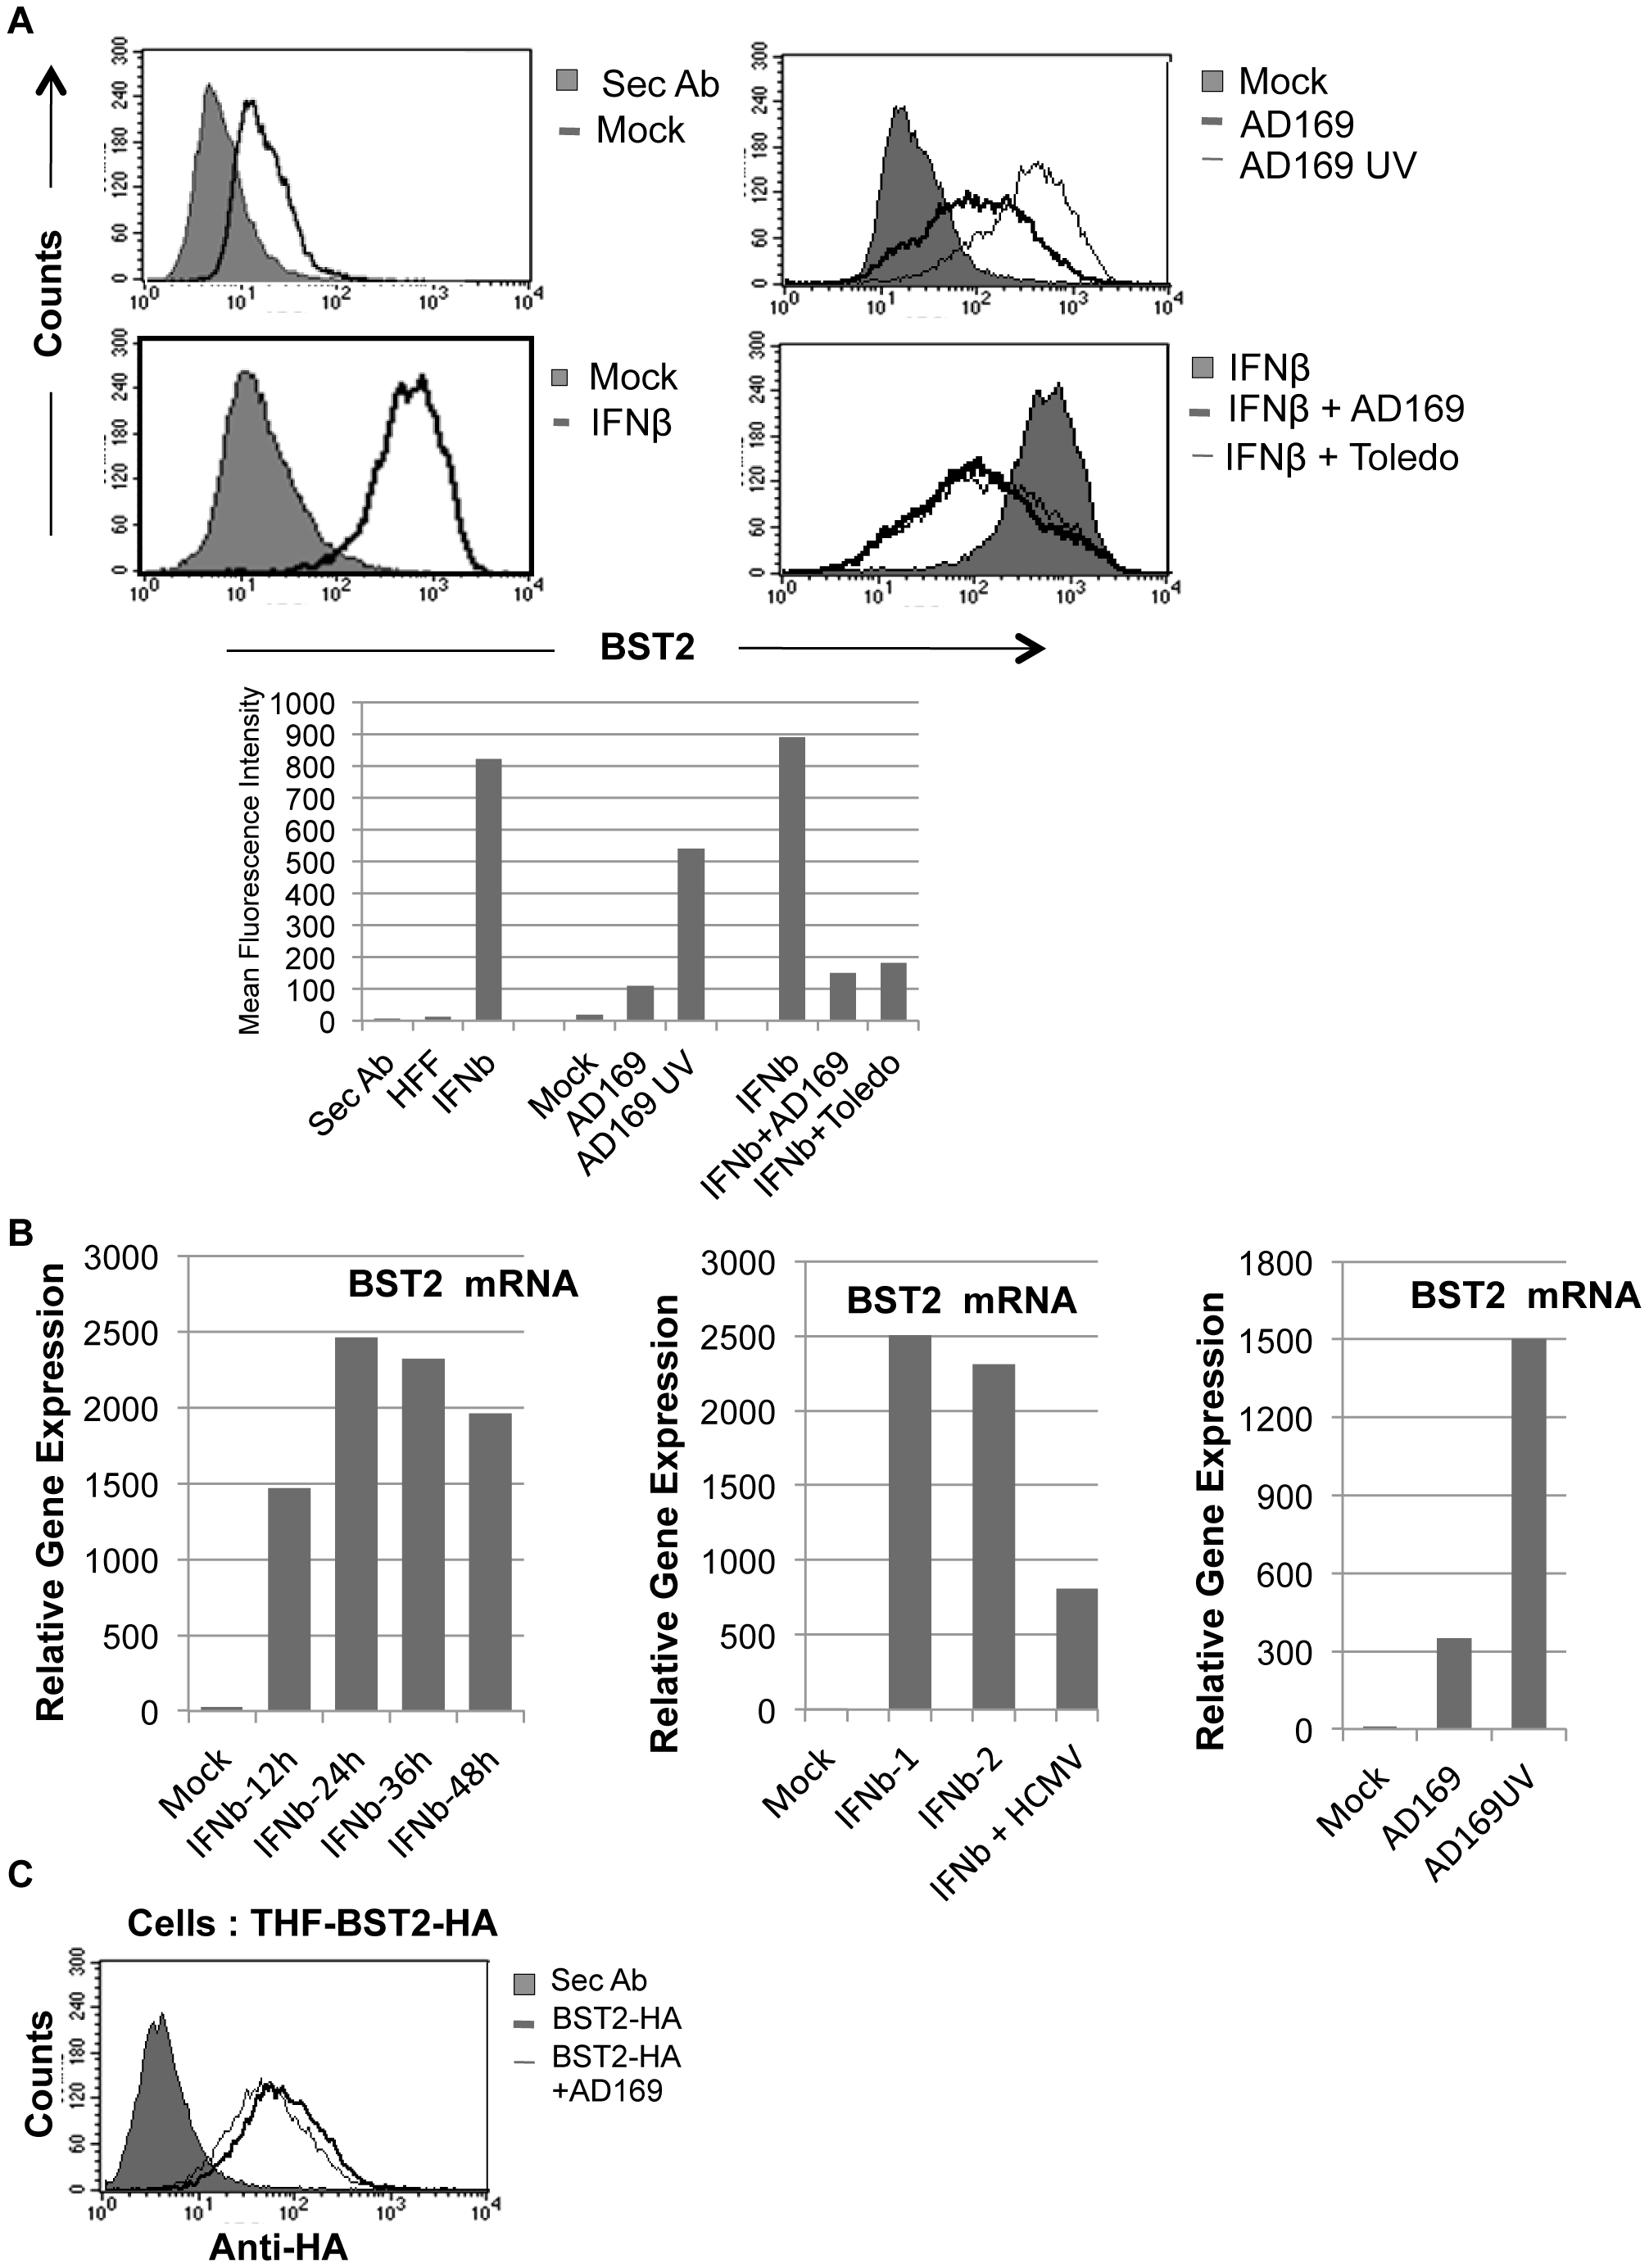 HCMV induces BST2 independent of IFN, but inhibits IFN-dependent induction.